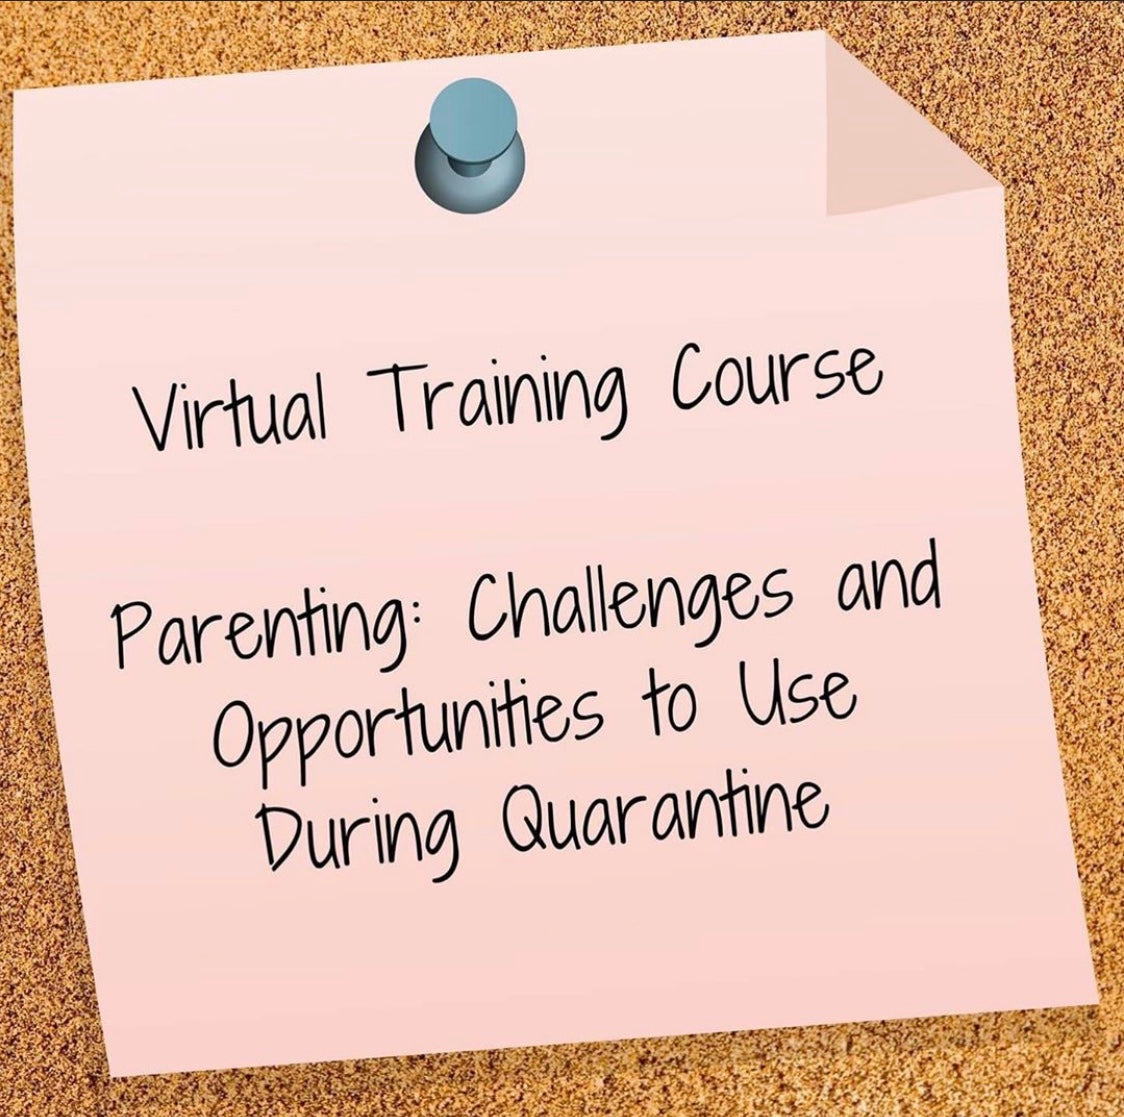 Virtual Training Course - Challenges and opportunities to use during quarantine